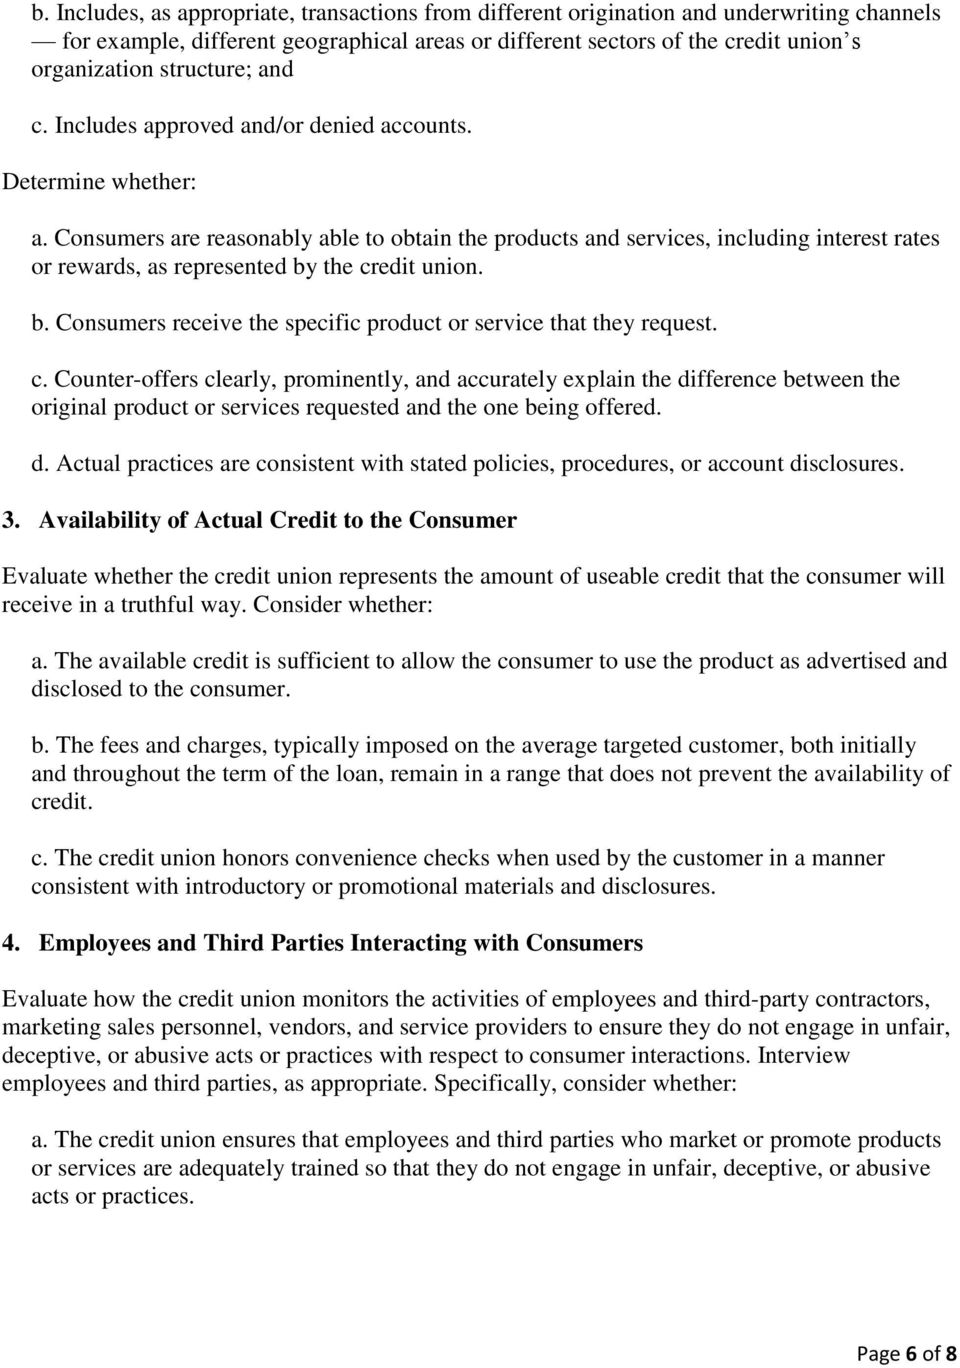 Consumers are reasonably able to obtain the products and services, including interest rates or rewards, as represented by the credit union. b. Consumers receive the specific product or service that they request.